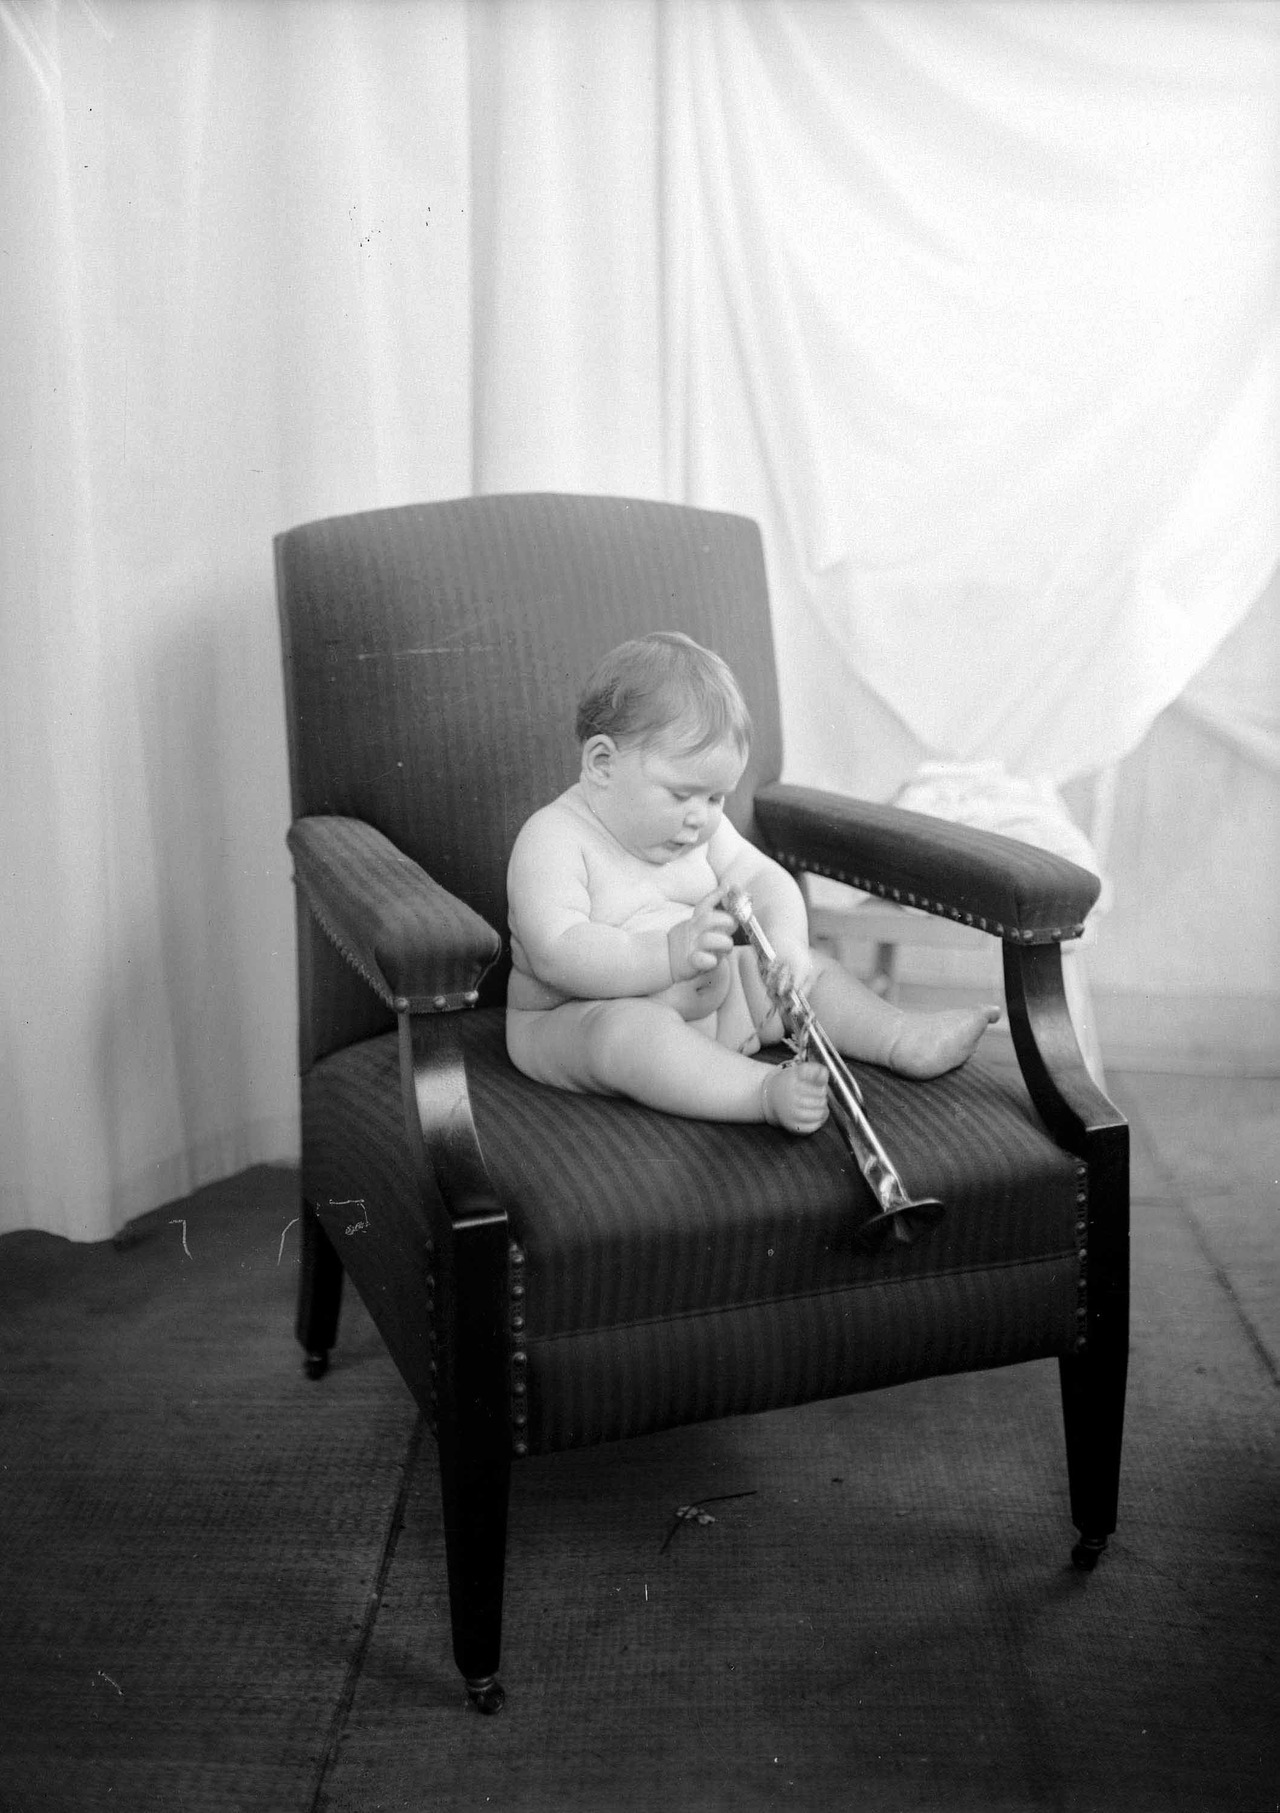 "Better Baby Contestant, ca. 1920 The Better Baby Contest was held at the Vancouver Exhibition (PNE) from 1913 to 1919. From there it moved to New Westminster and was a staple until the exhibition buildings there burned down in 1929. The contests were initiated by the Local Council of Women and the babies were judged by medical doctors, who deducted points for any defects they found. So-called defects could be as trivial as moles or pug-noses, and would stigmatize children as ""flawed"" for the rest of their lives. Locals often became indignant when their babies were judged to be above the ideal weight for their age. Criteria were set in the east, whereas BC babies tended to be more robust because of their rugged frontier lifestyle, they argued, and therefore shouldn't be penalized.   These were not just beauty contests, but rather were intended to educate the public. The Better Baby Contests fit into the larger eugenics movement that included such things as forced sterilization of the ""feeble minded."" Naturally, only Anglo-Saxon babies were entered in the contests, since one of the main driving forces of eugenics was that miscegenation and non-British immigration would ultimately result in ""race suicide"" for North American whites. For more info, see Gerald E Thomson, ""'A Baby Show Means Work in the Hardest Sense': The Better Baby Contests of the Vancouver and New Westminster Local Councils of Women, 1913-1929,"" BC Studies no. 28, Winter 2000/2001 Source: Photo by Stuart Thomson, City of Vancouver Archives #99-1297"